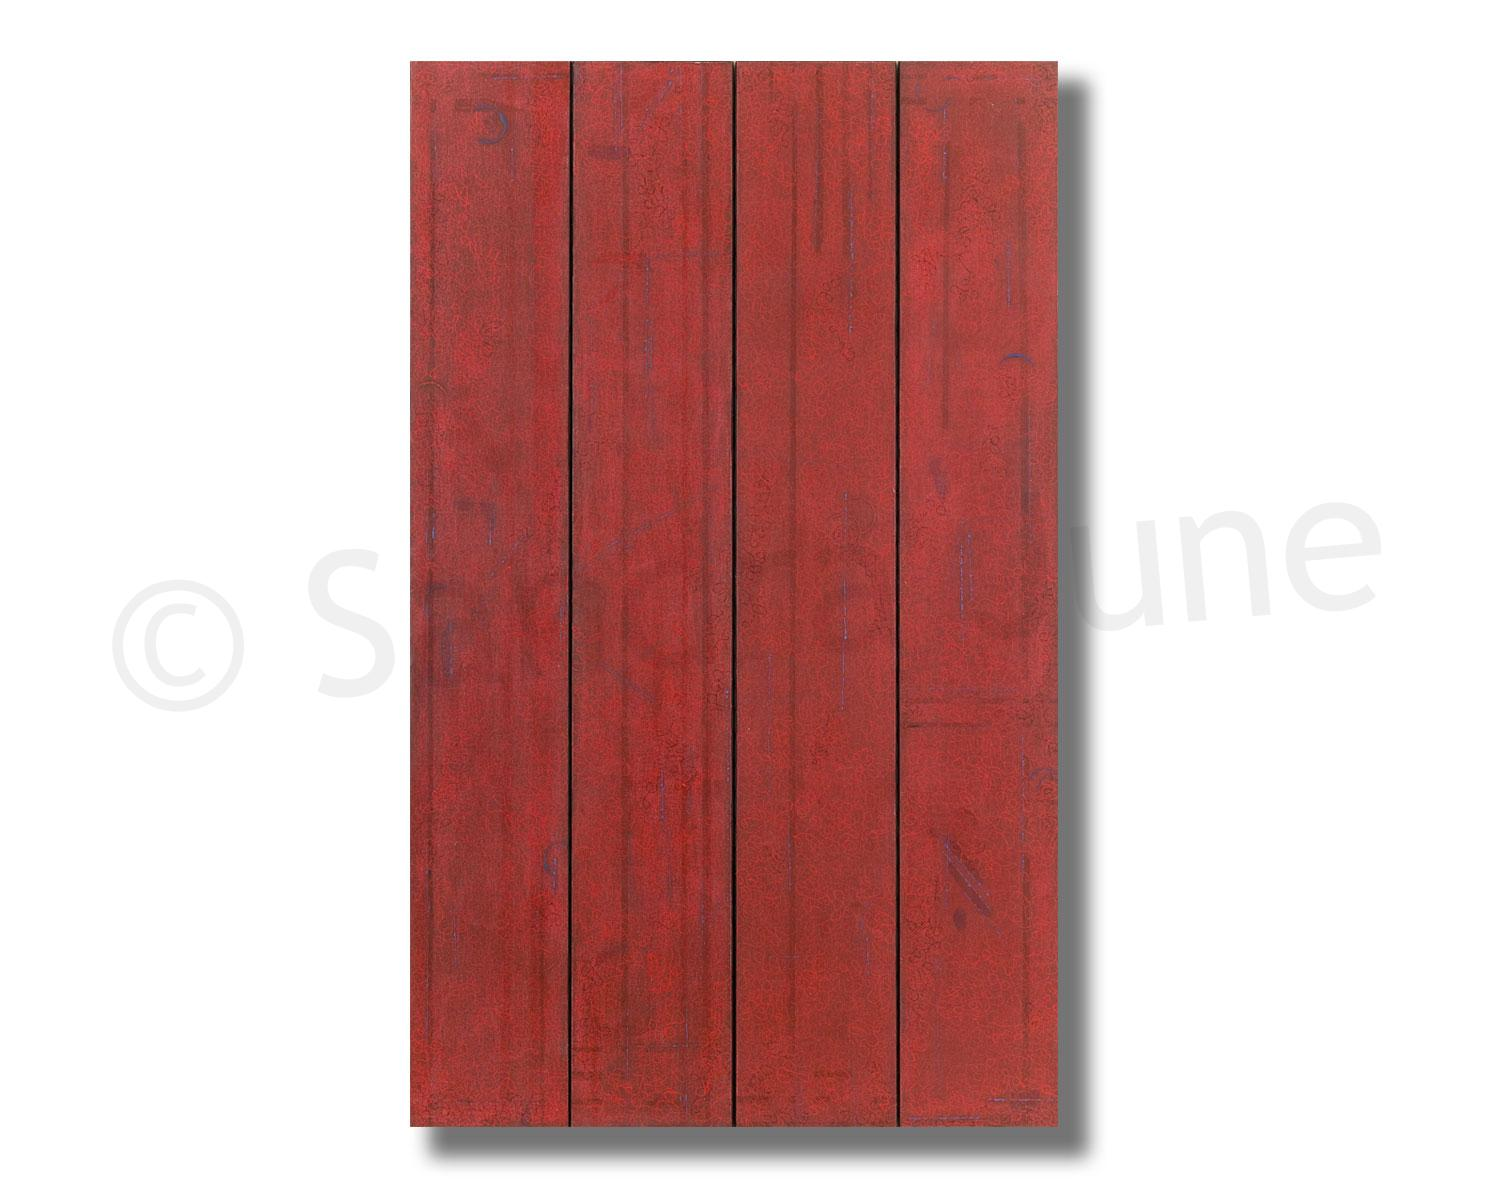 Untitled screen (red side)